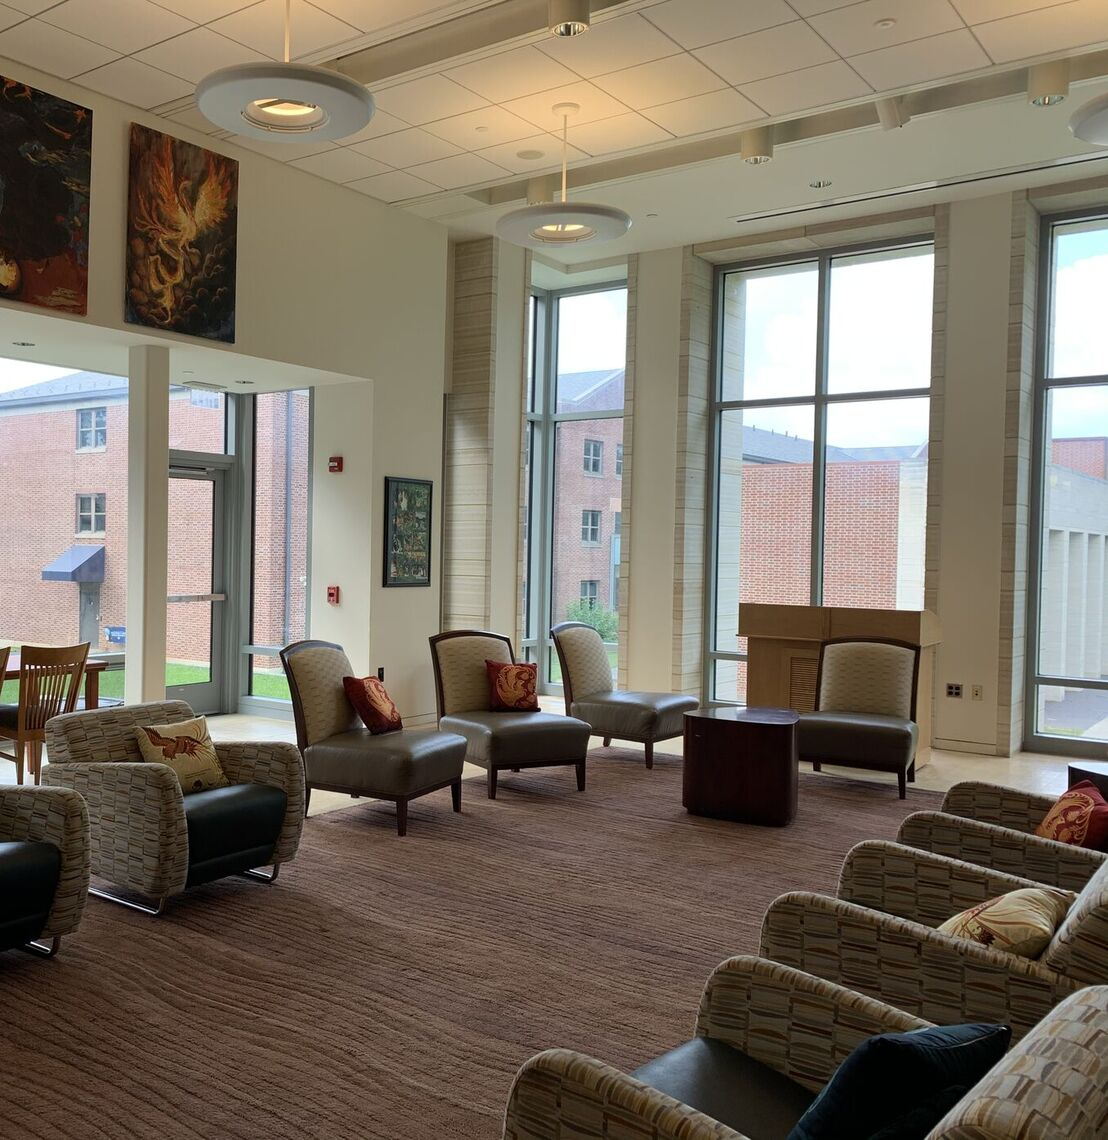 The Great Room, where students gather for Brooks Breakfasts and other events, or just to hang out with friends.